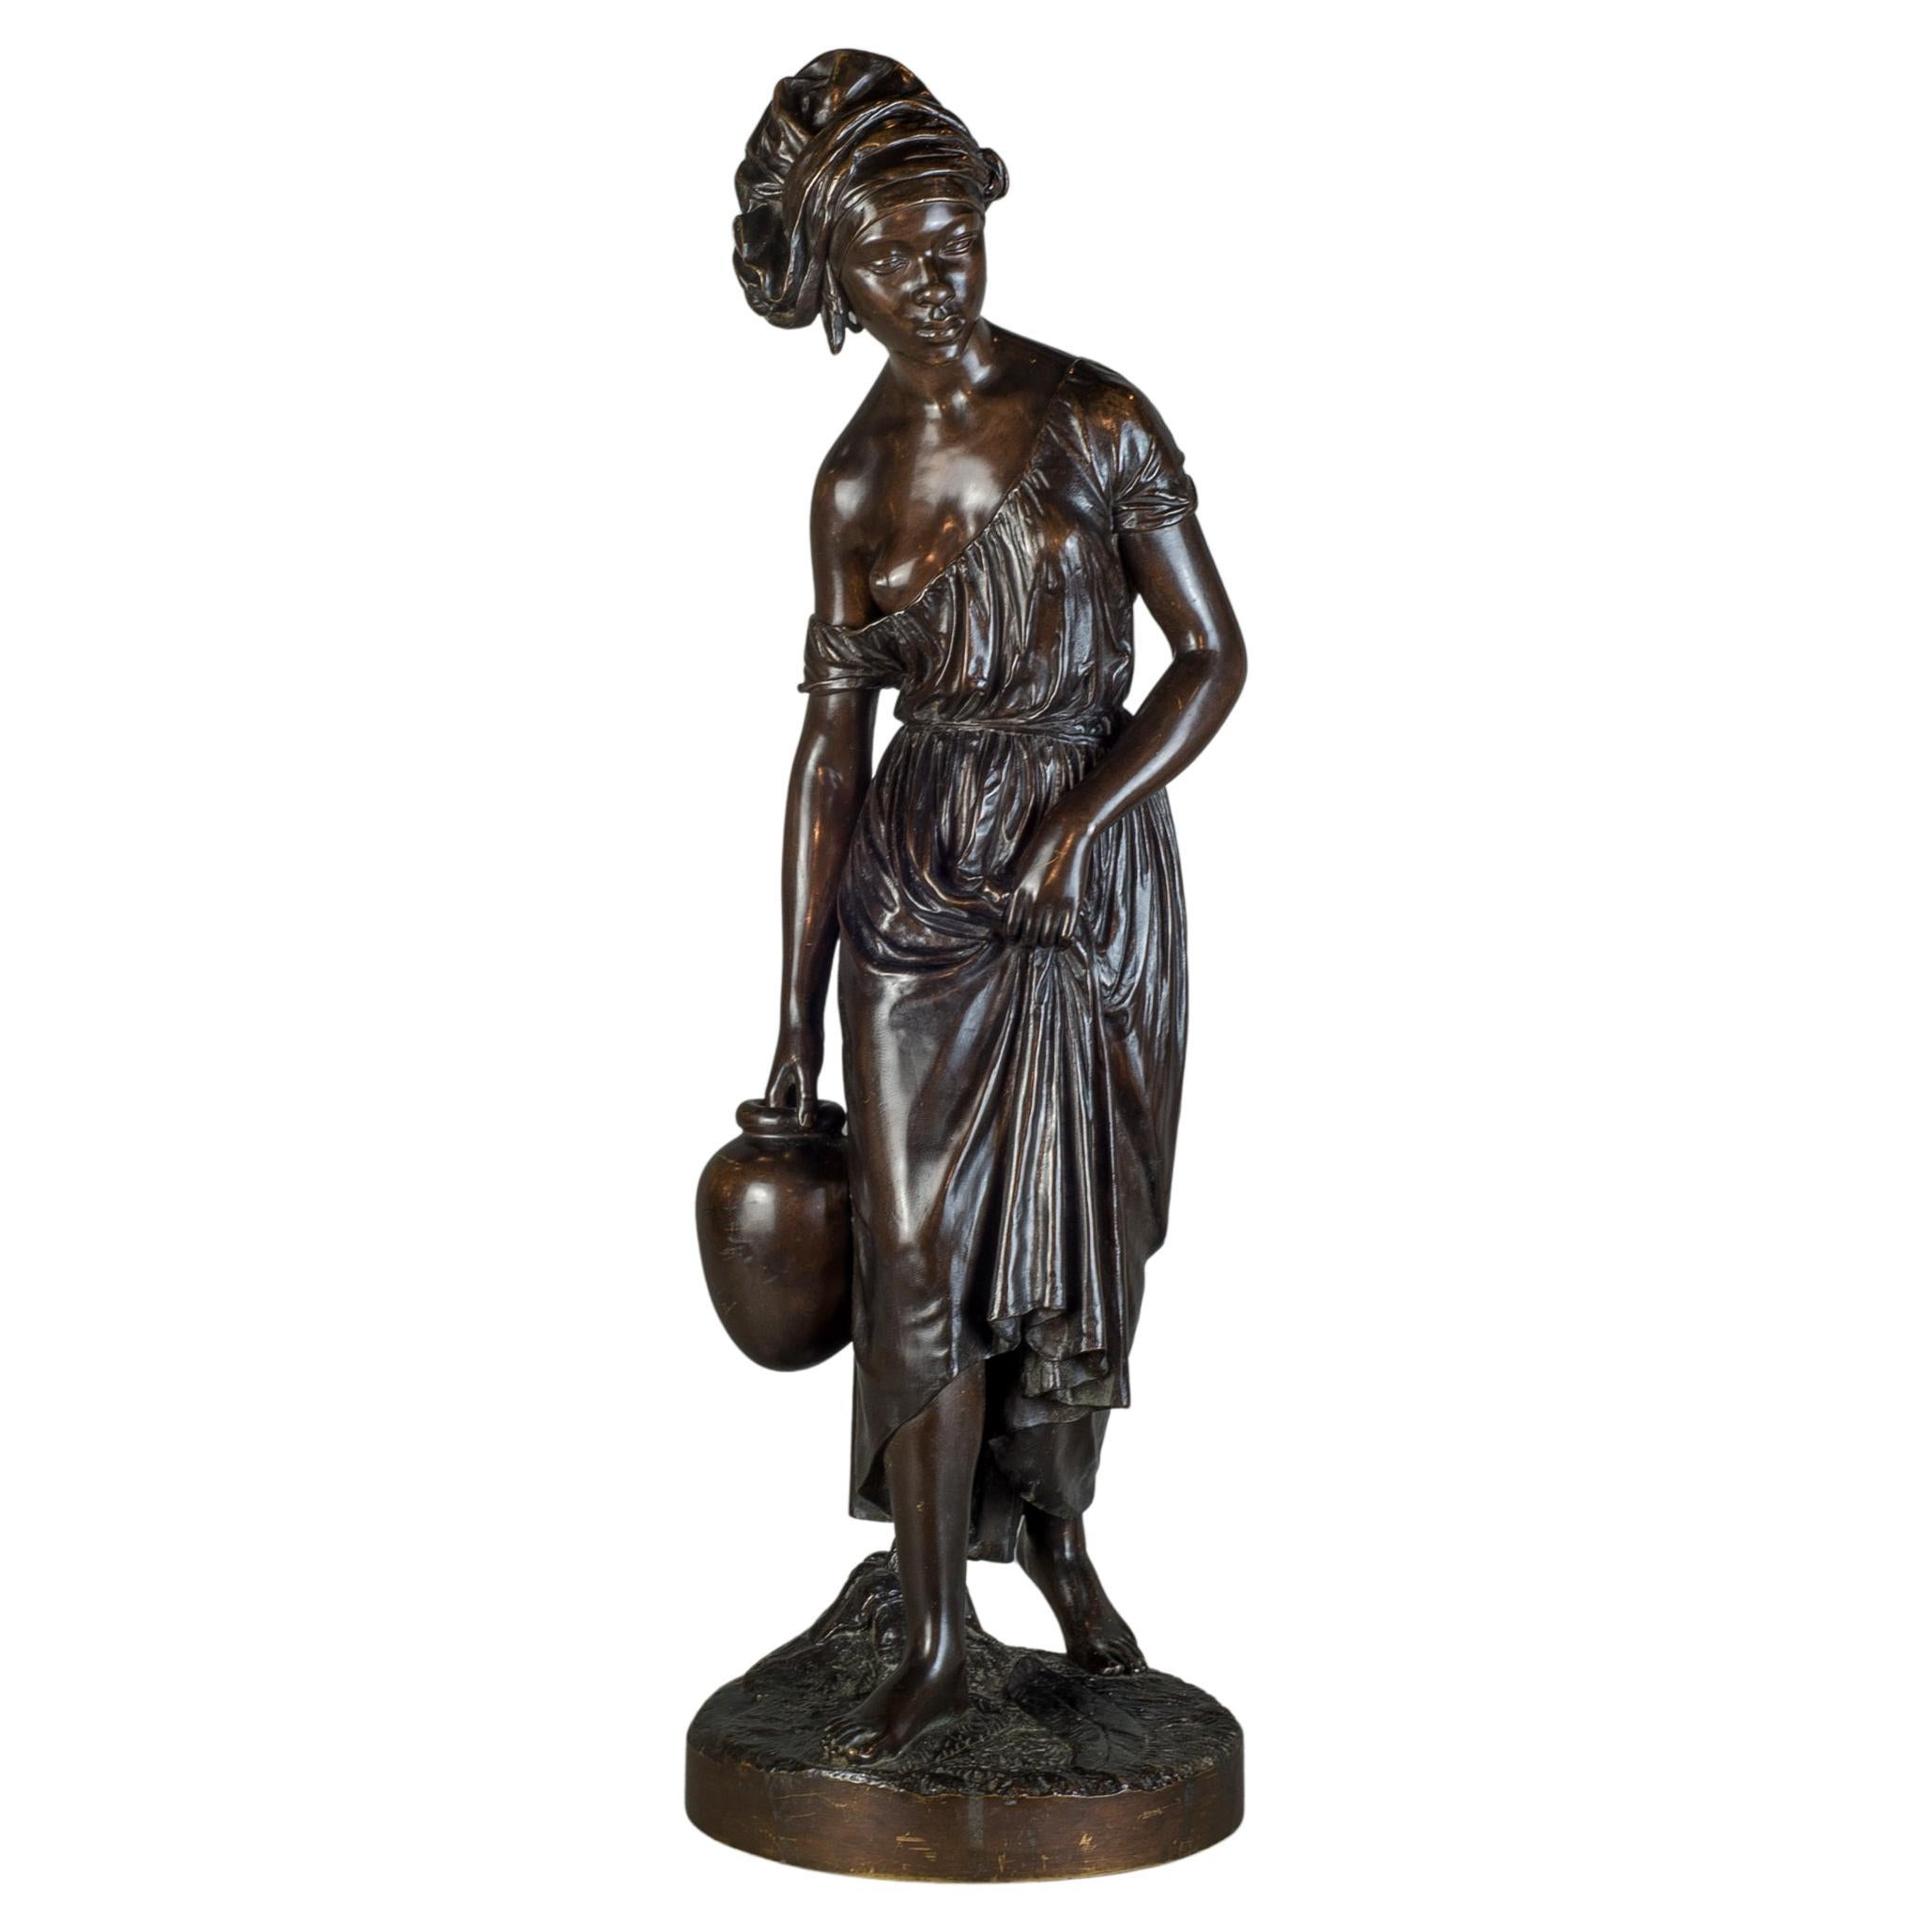 French Bronze Sculpture Statue of a Nubian Woman